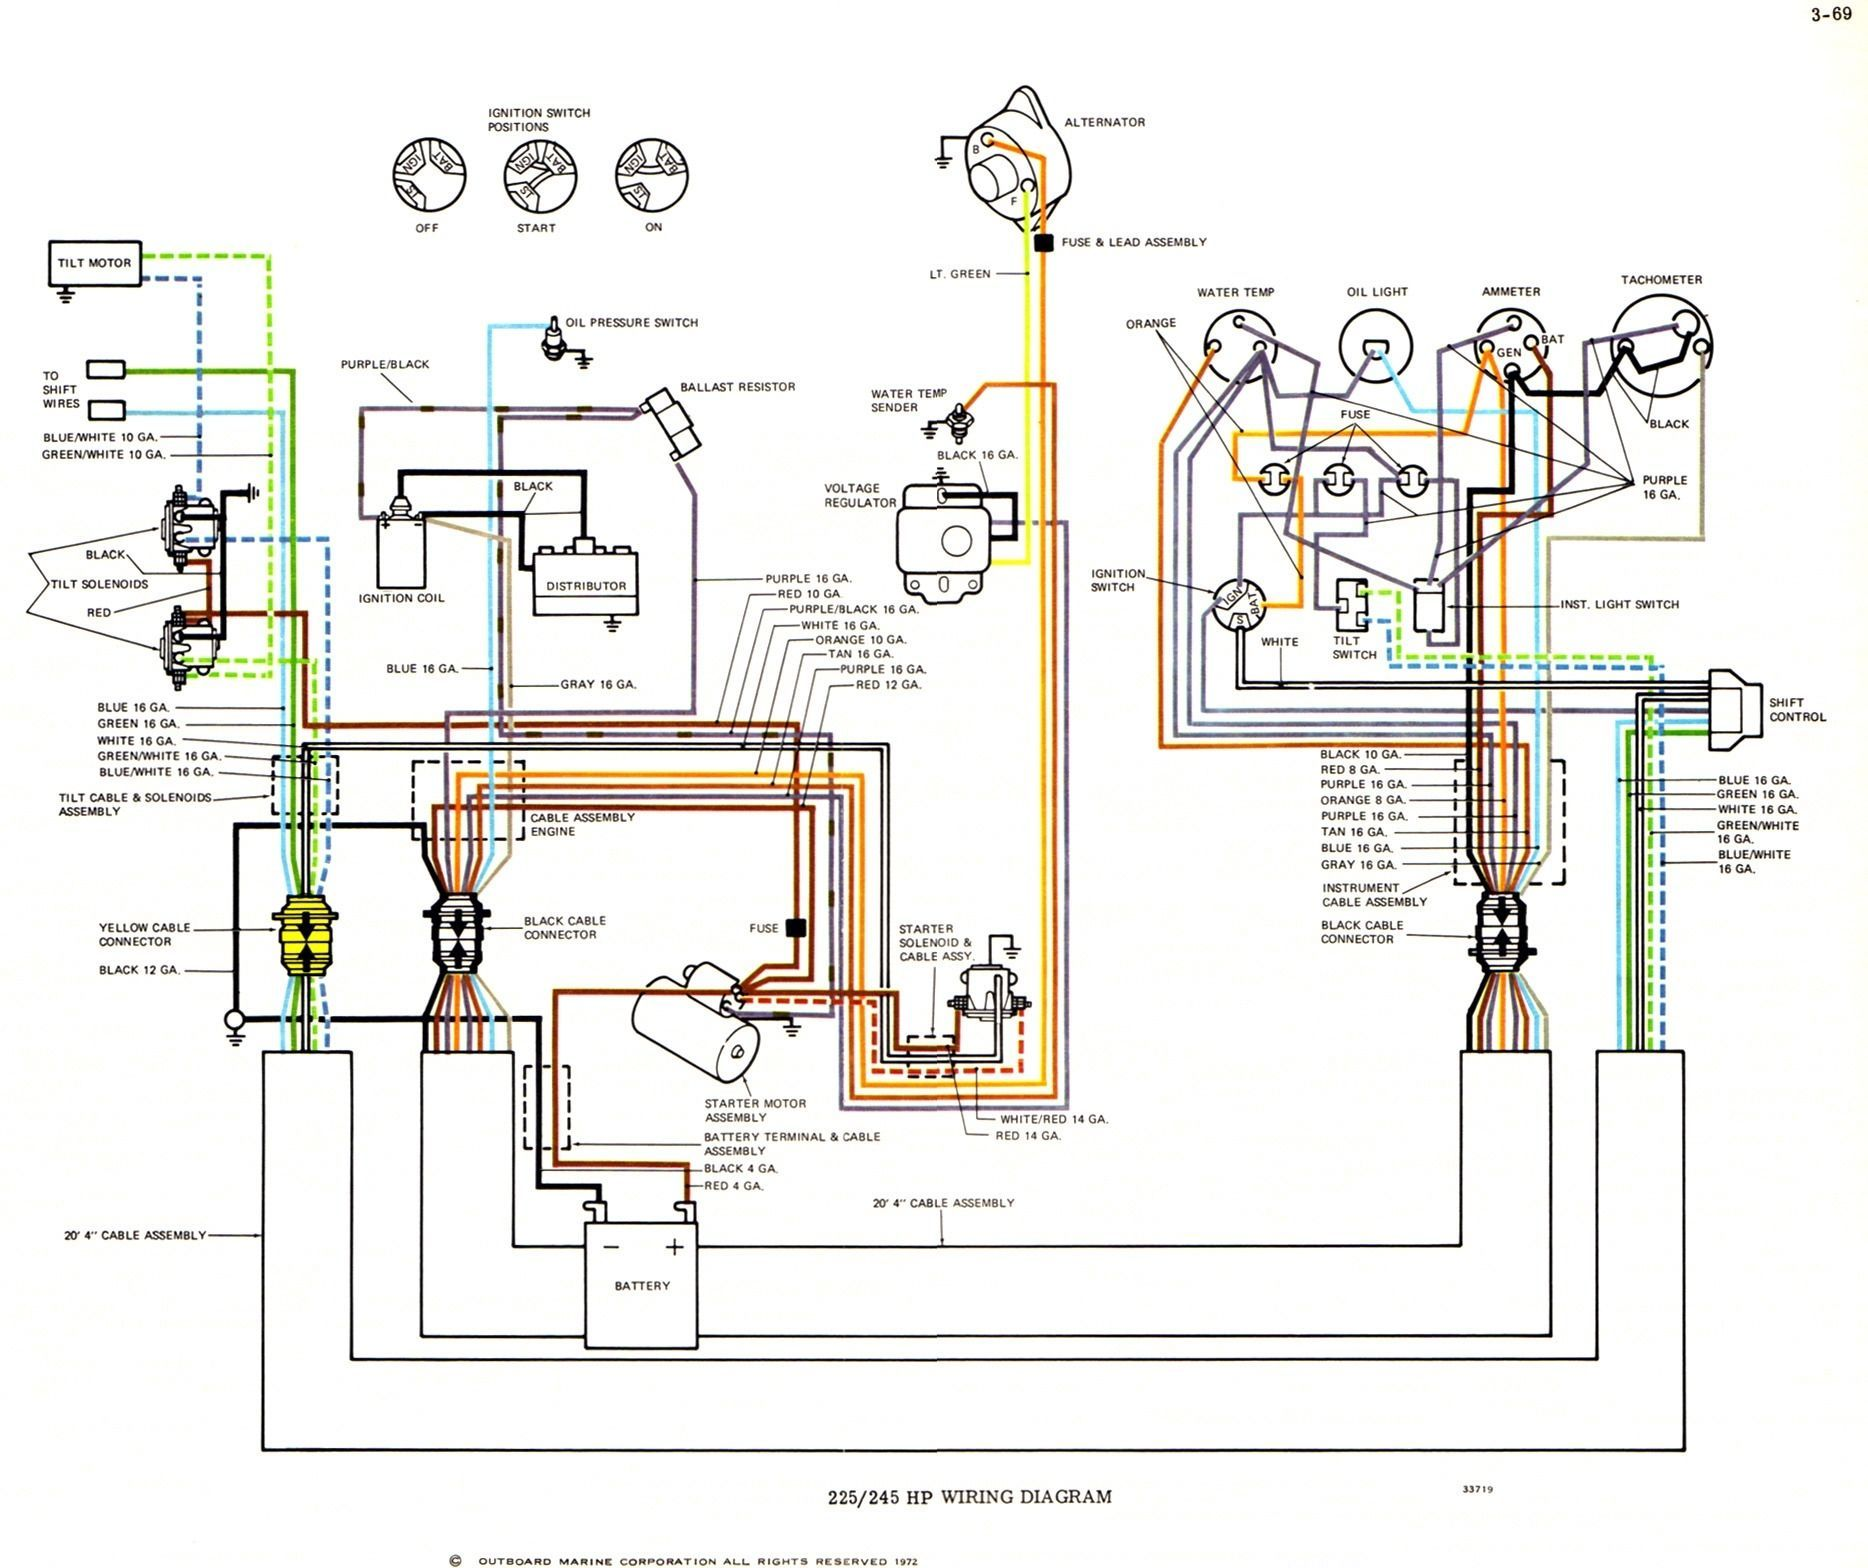 Yamaha 150 Outboard Wiring Diagram Electrical Wiring Diagram Boat Wiring Electrical Wiring